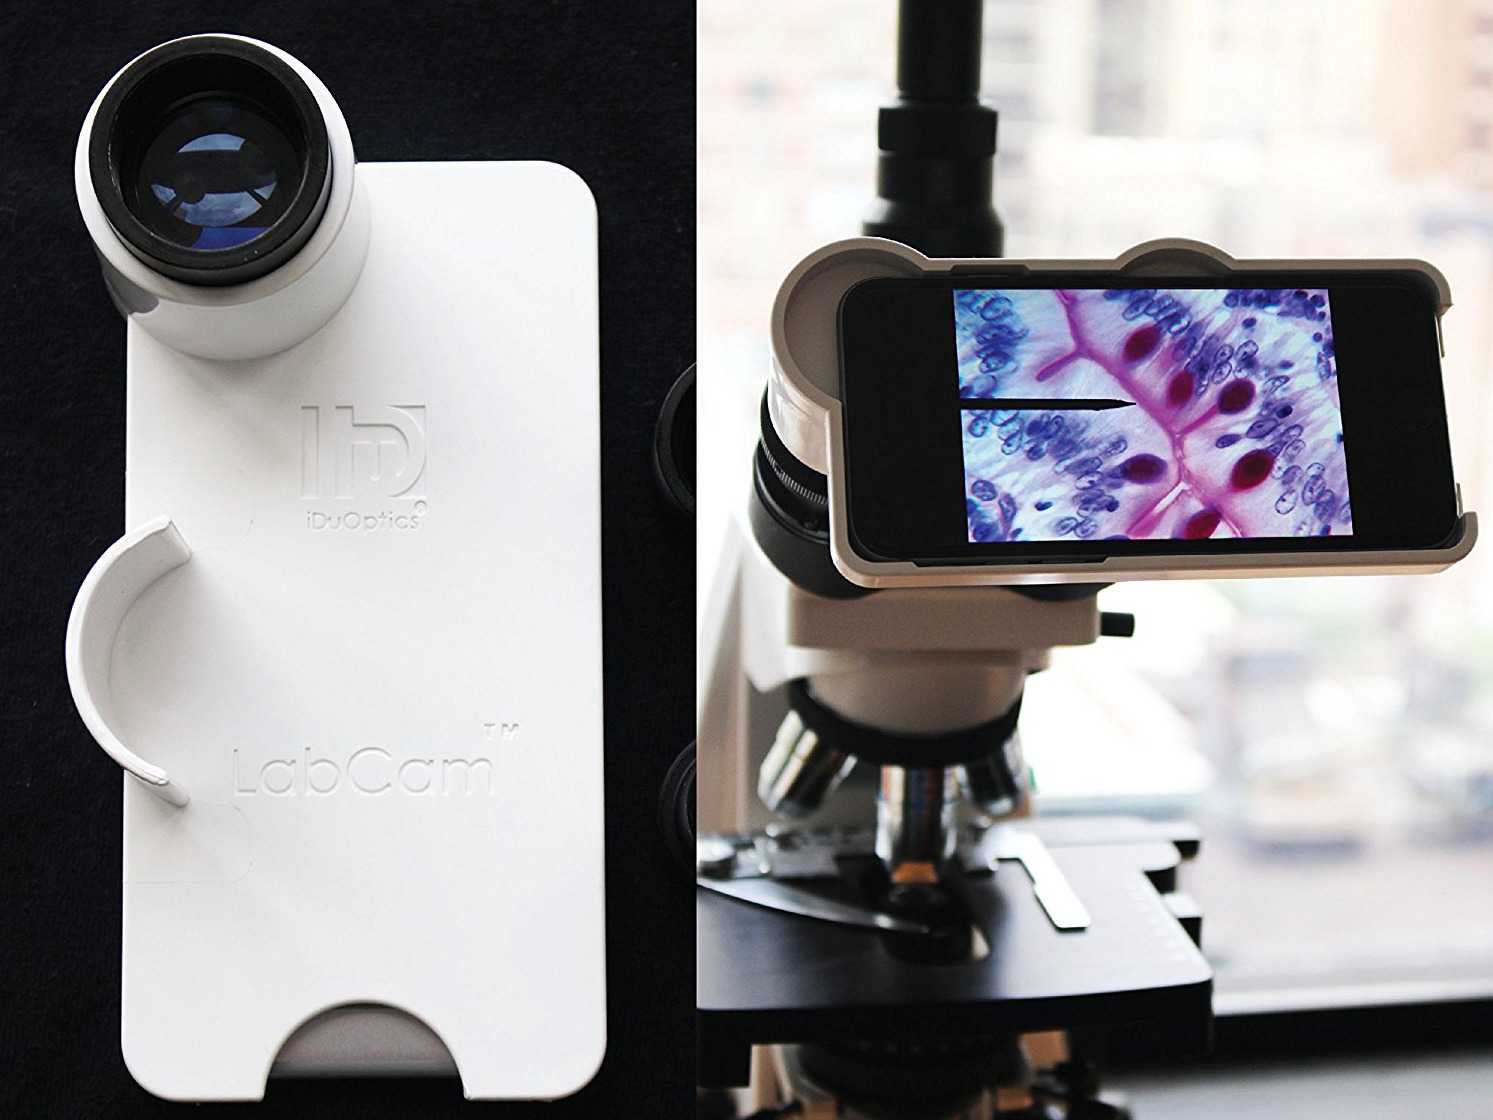 Microscope, Iphone, Camera, Idu, digital photomicrographs, adaptors